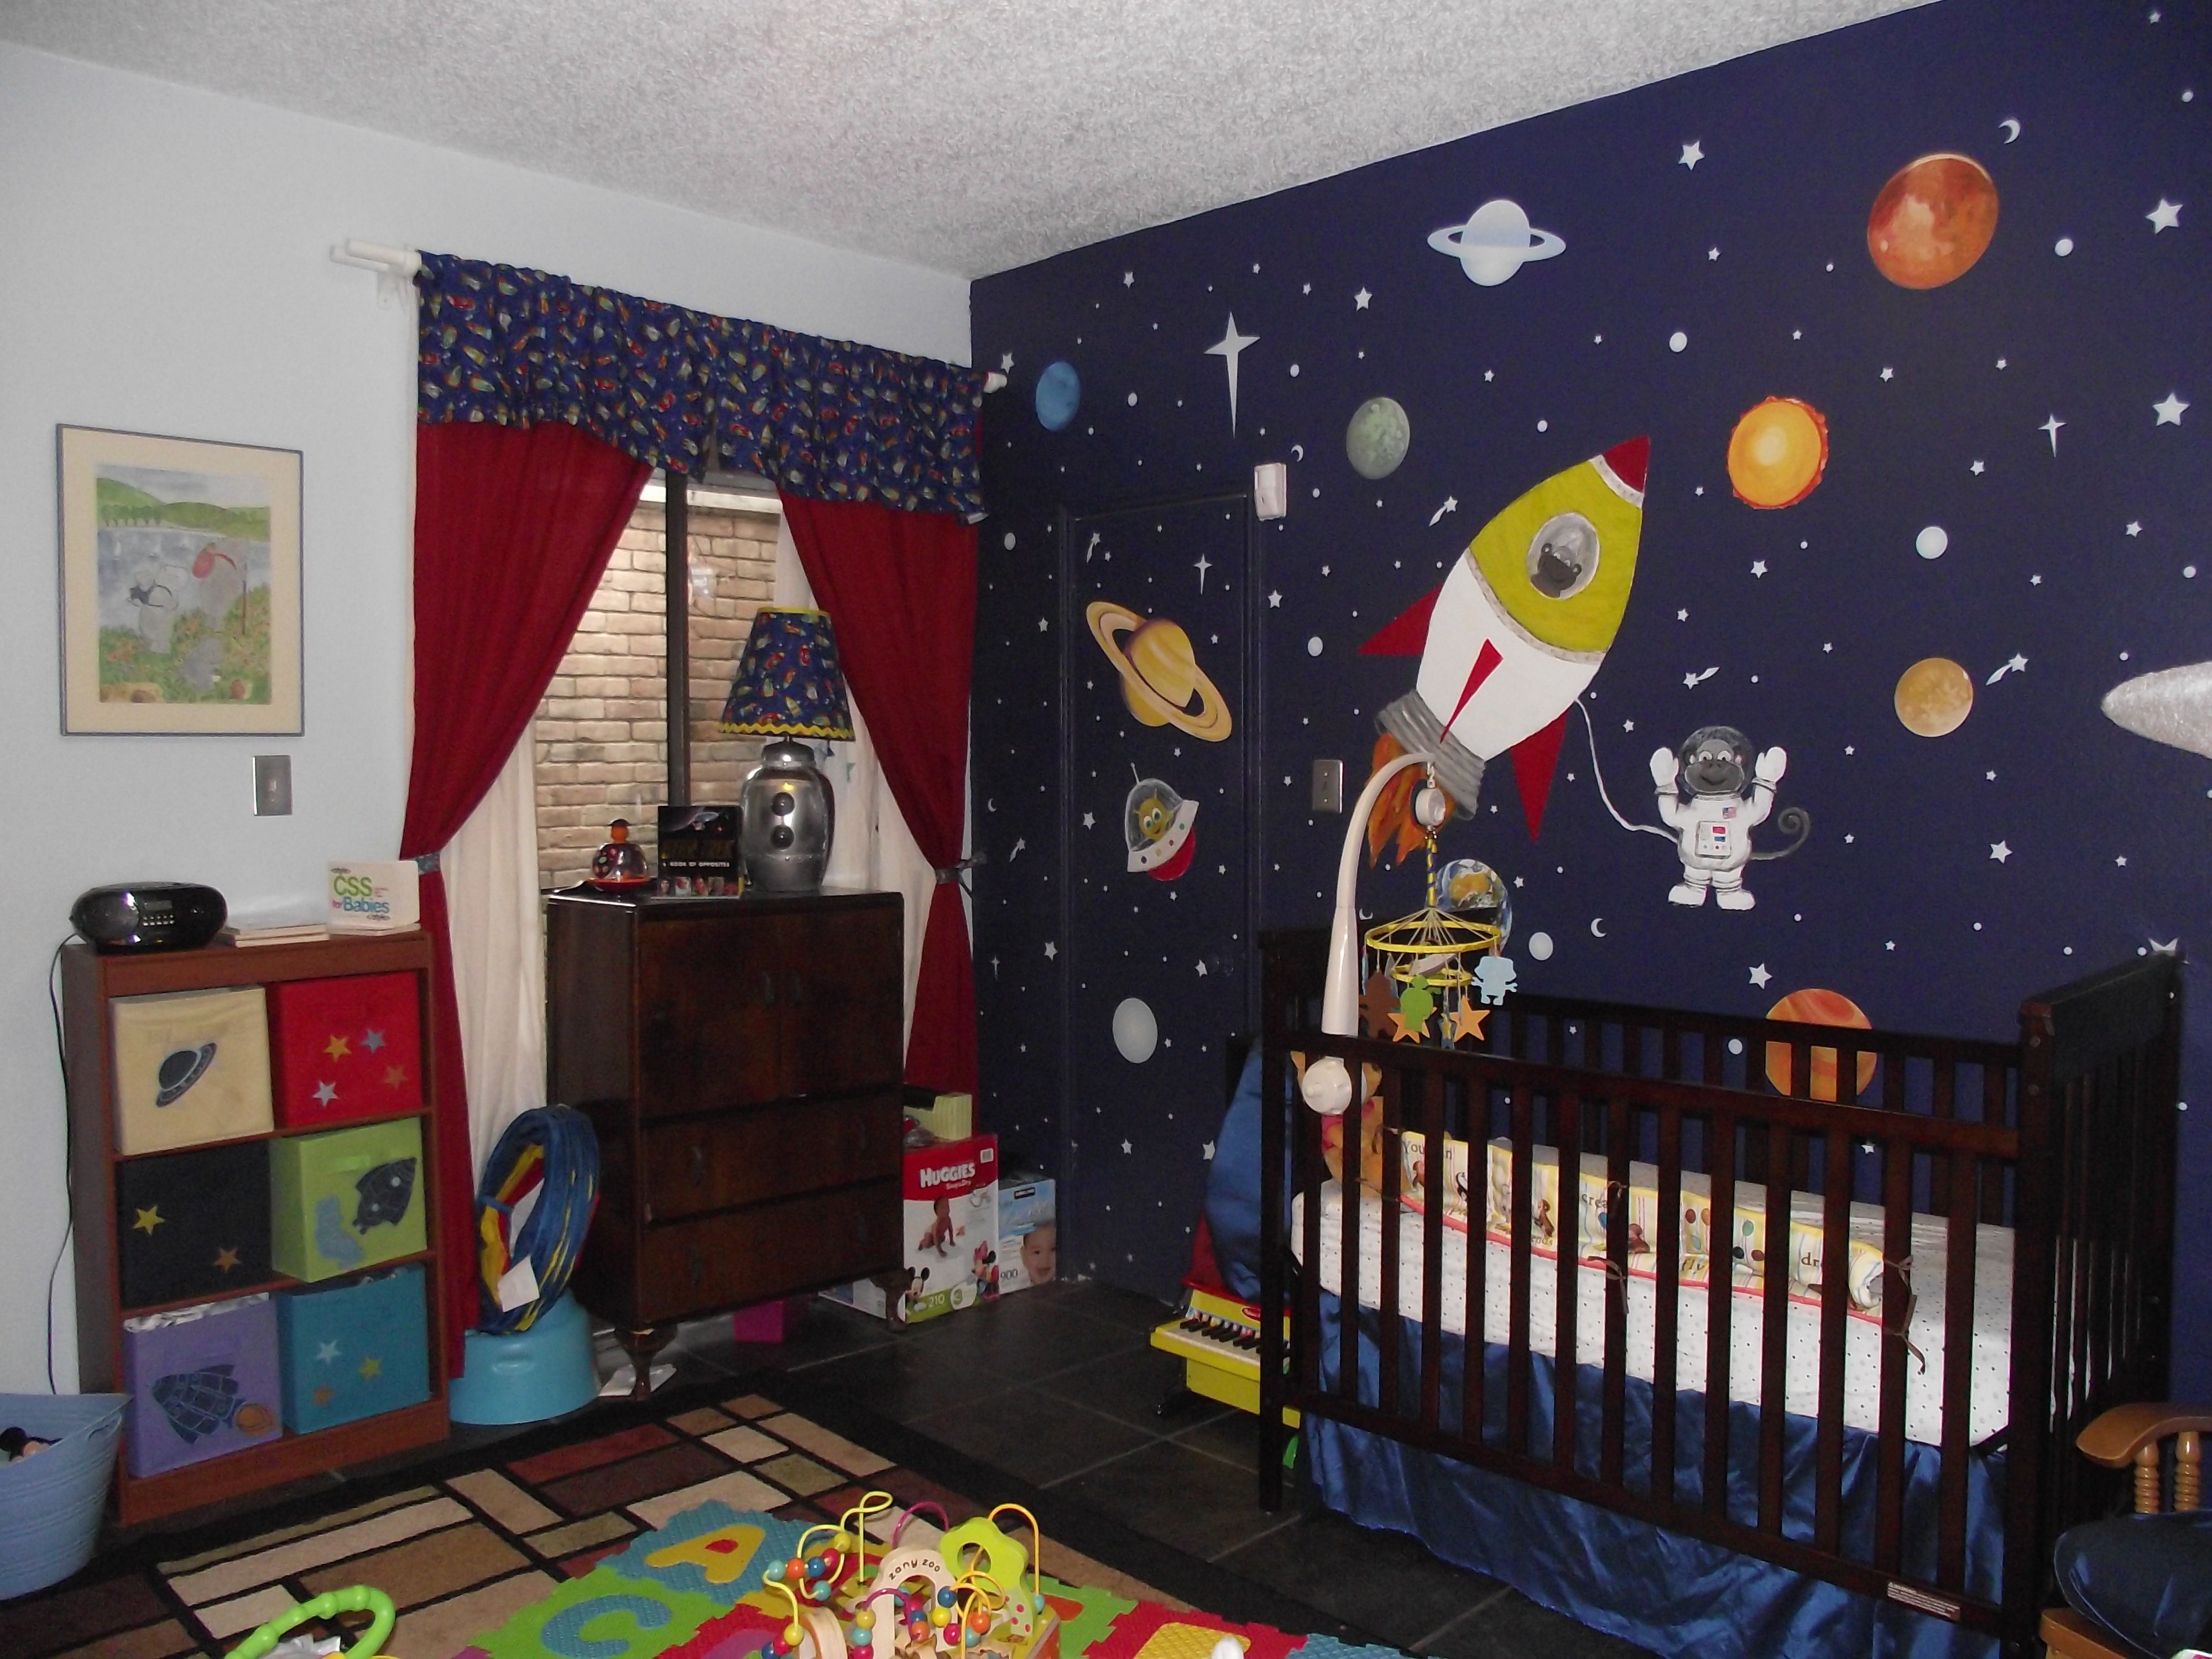 Pin By Mj Kelly On Kid S Room Space Themed Bedroom Bedroom Themes Space Themed Nursery